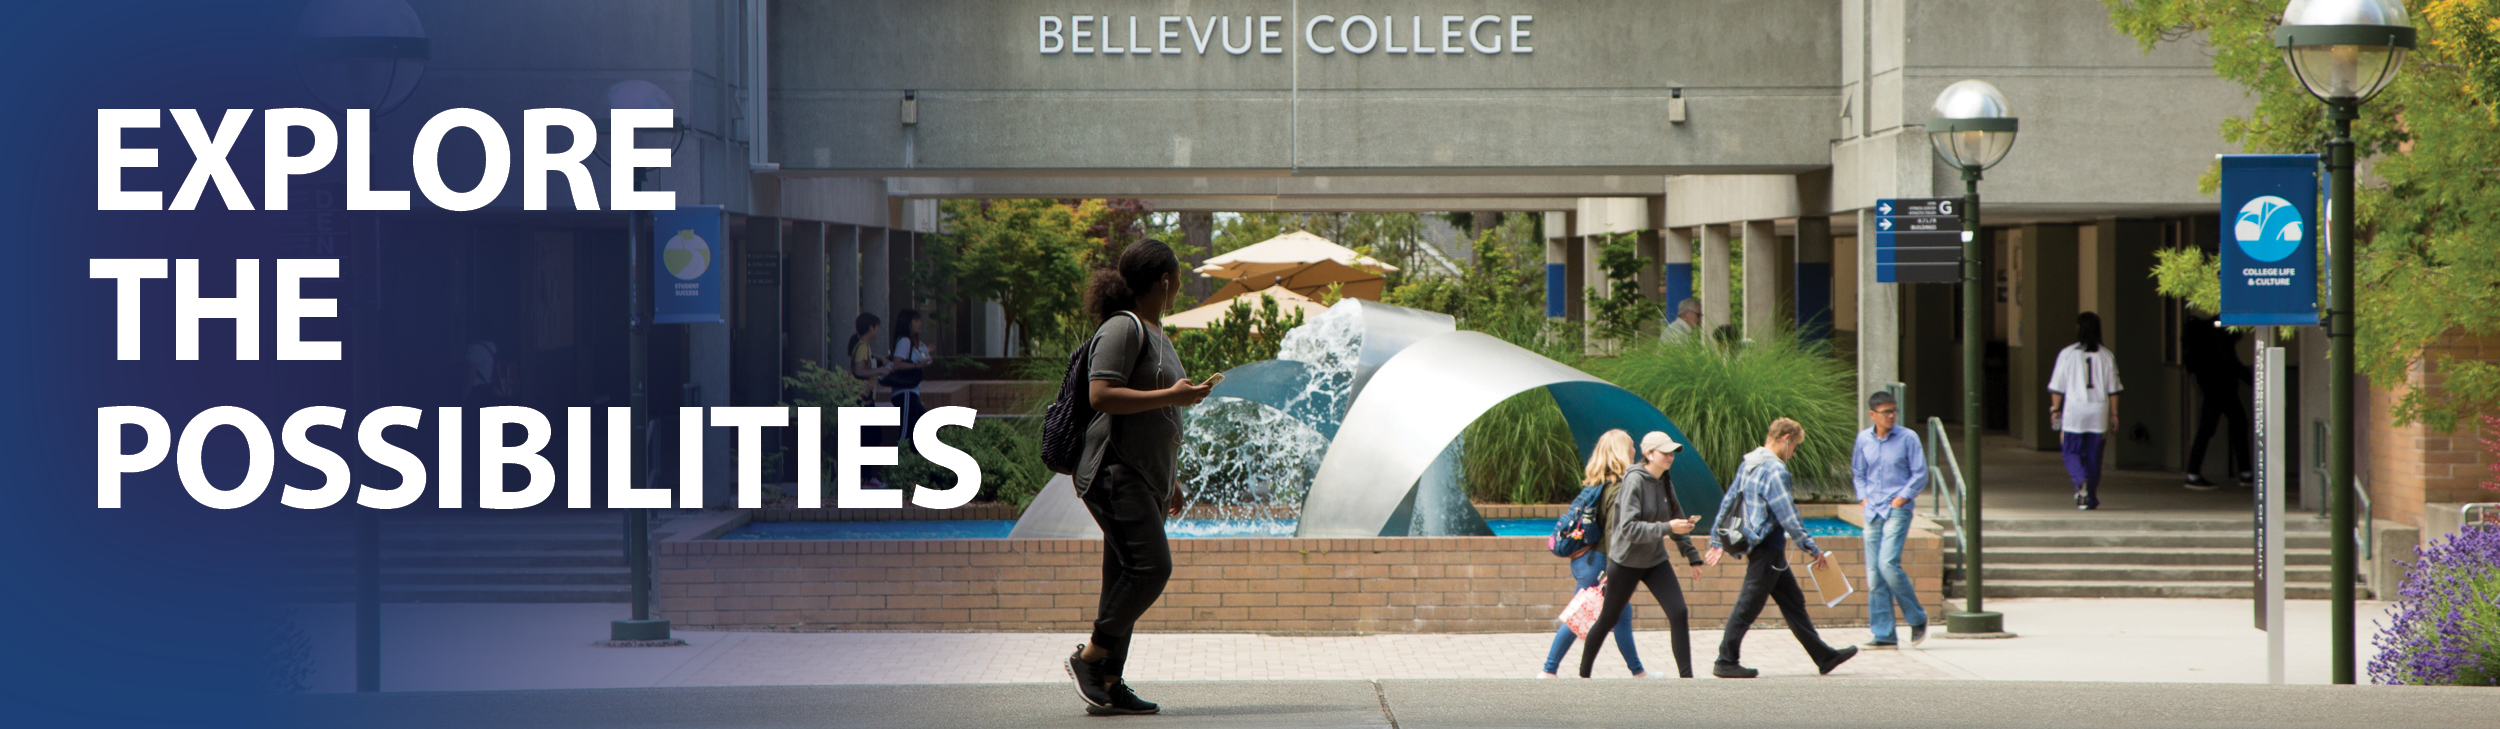 Explore the Possibilities. Black student wearing backpack walking in front of Bellevue College fountain, with other students walking in the background